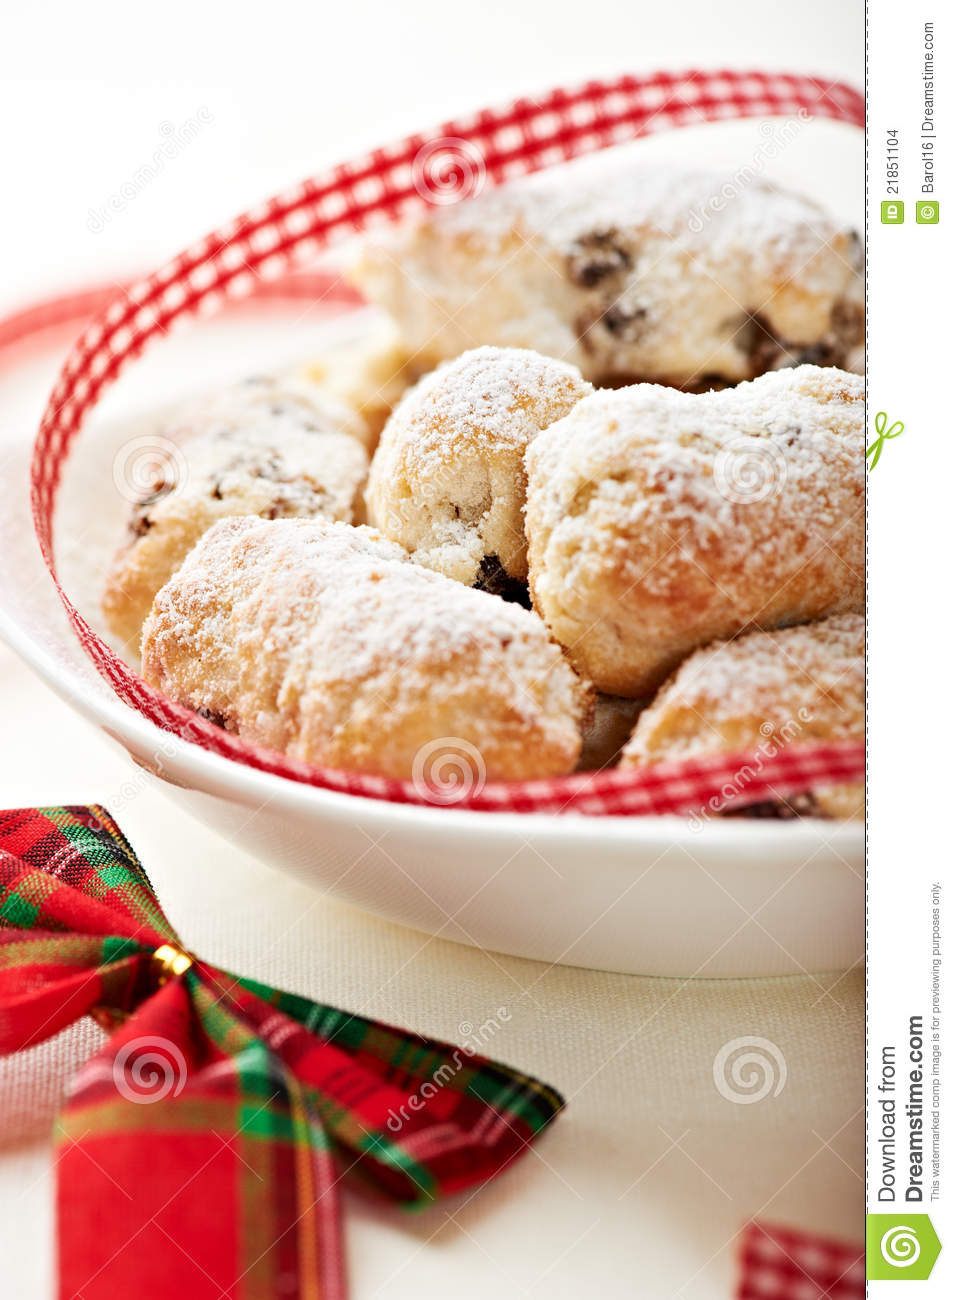 Similar stock images of christmas cake with icing sugar in a bowl